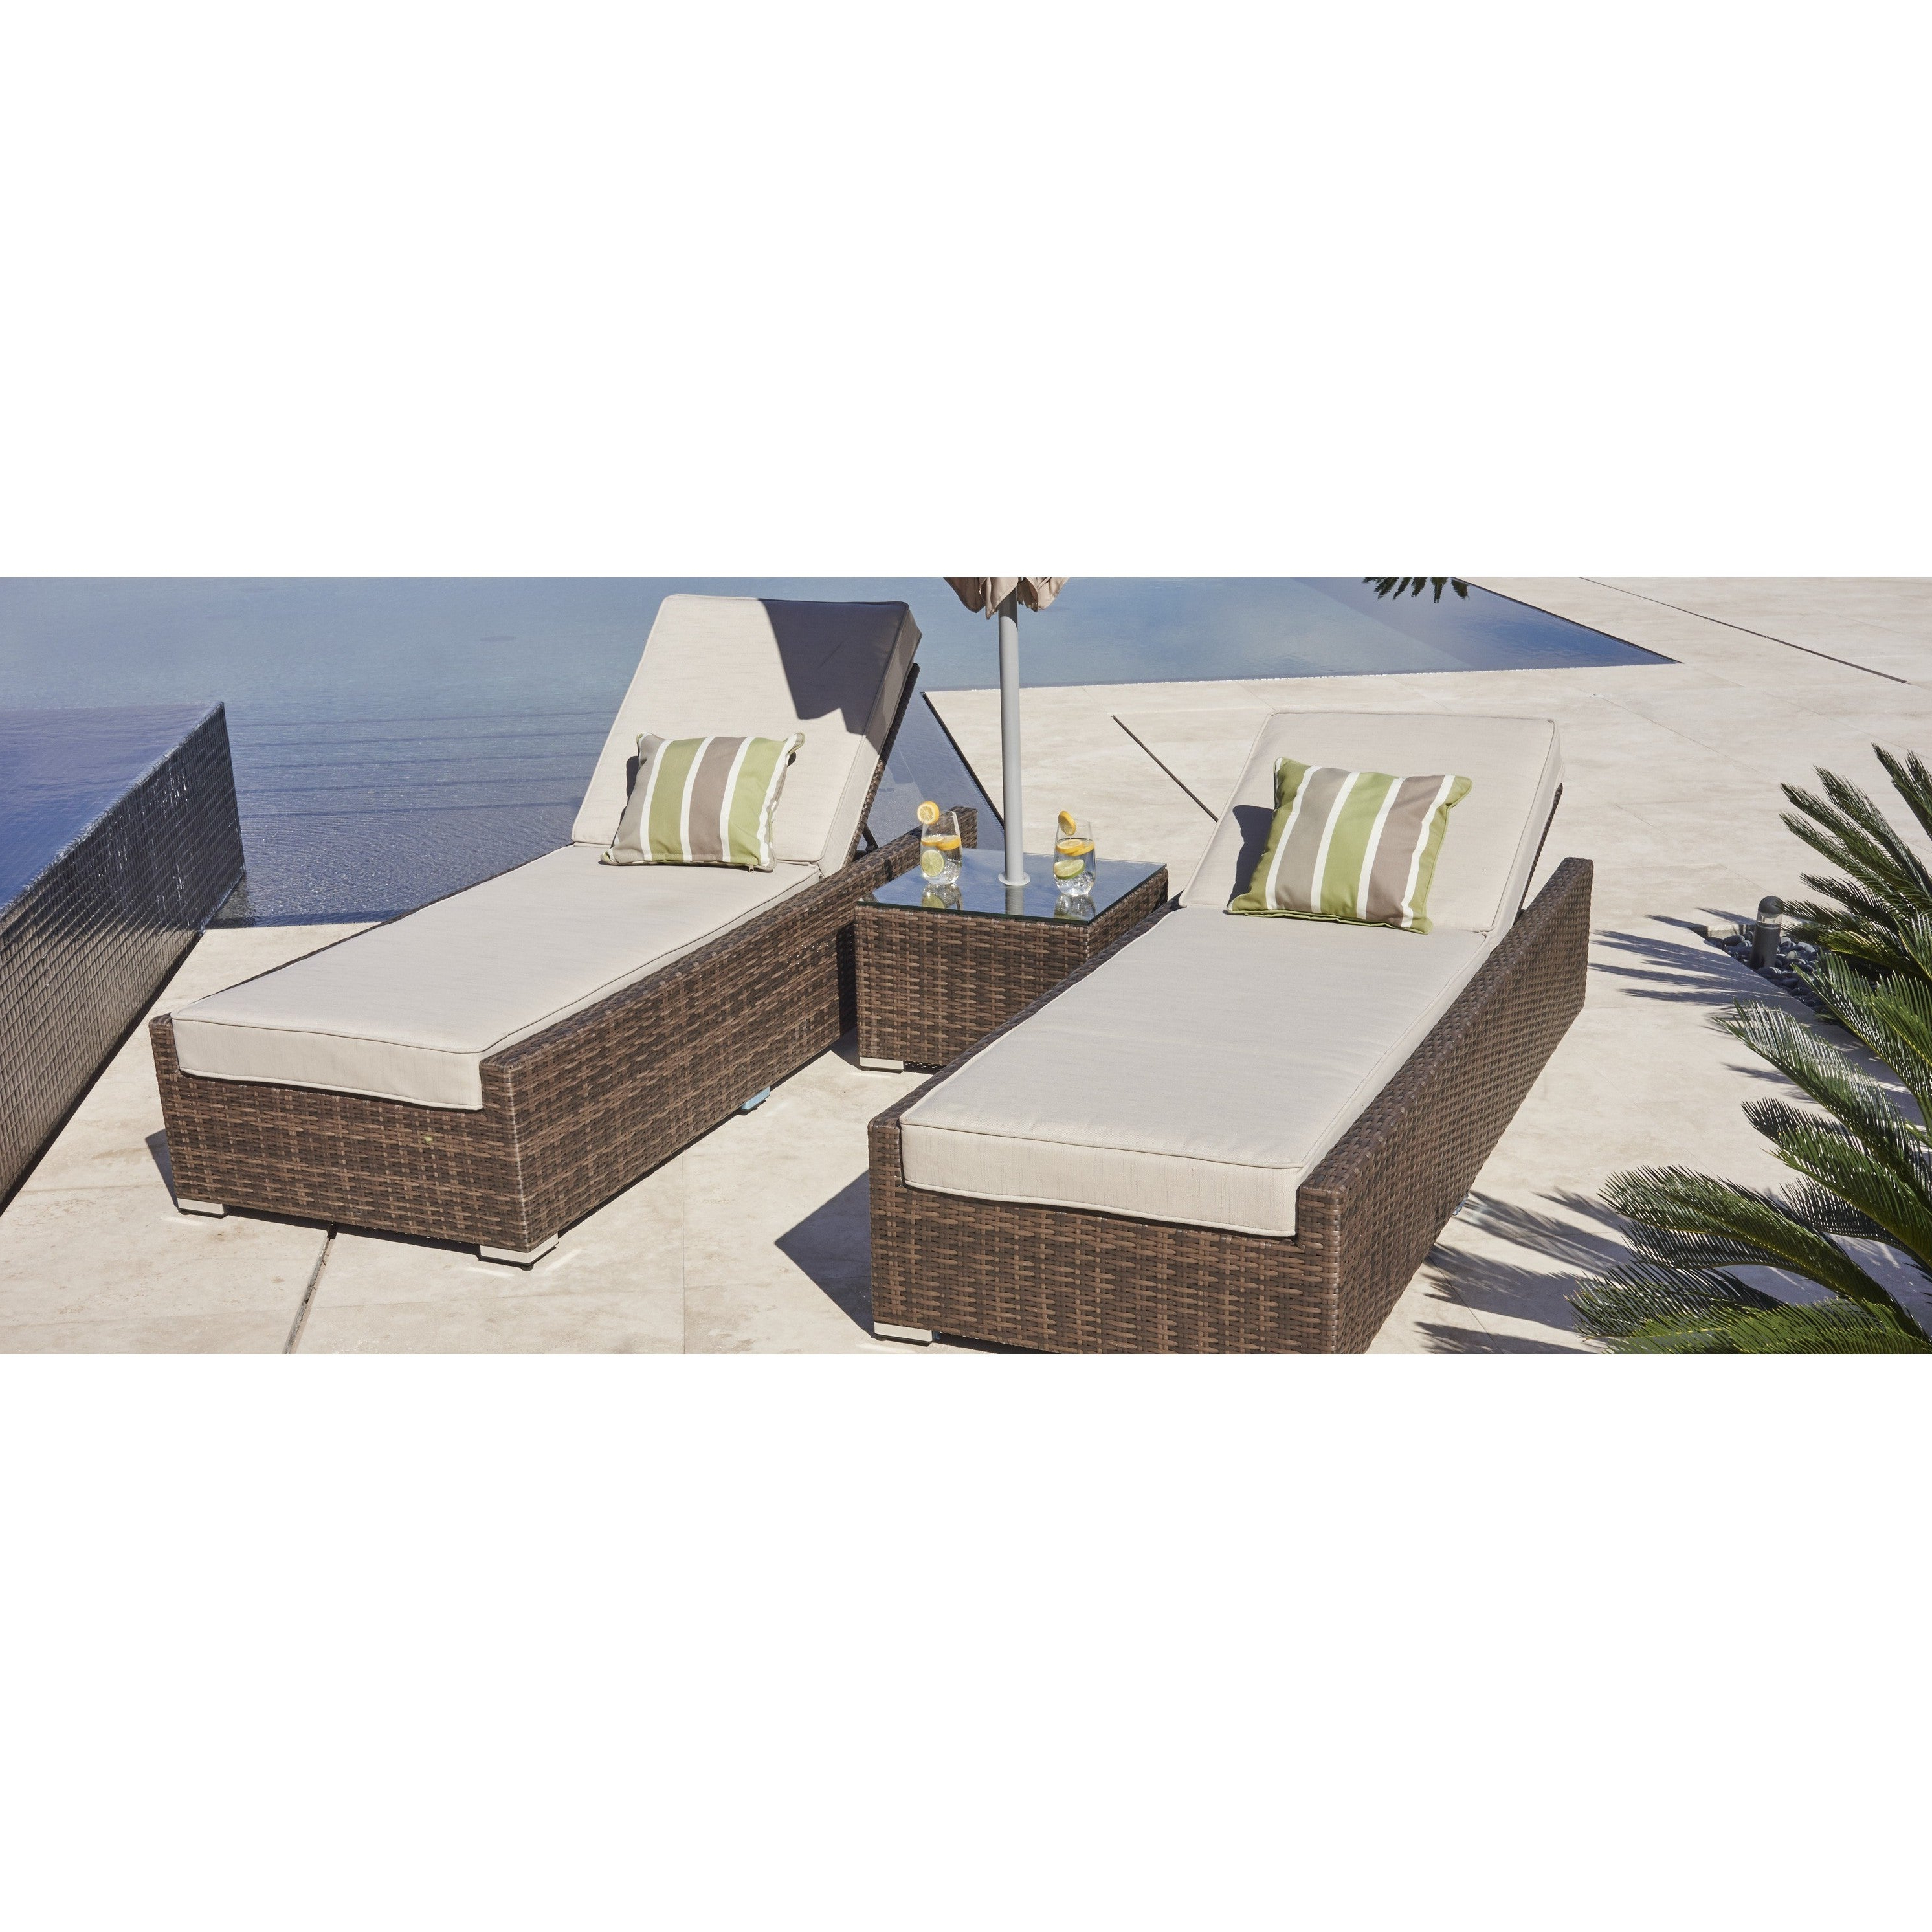 Outdoor 3 Piece Wicker Chaise Lounges And Table Sets Inside Famous Vida Brown Wicker Outdoor Patio Chaise Lounger Chairs And Side Table (set Of 3) (View 23 of 25)